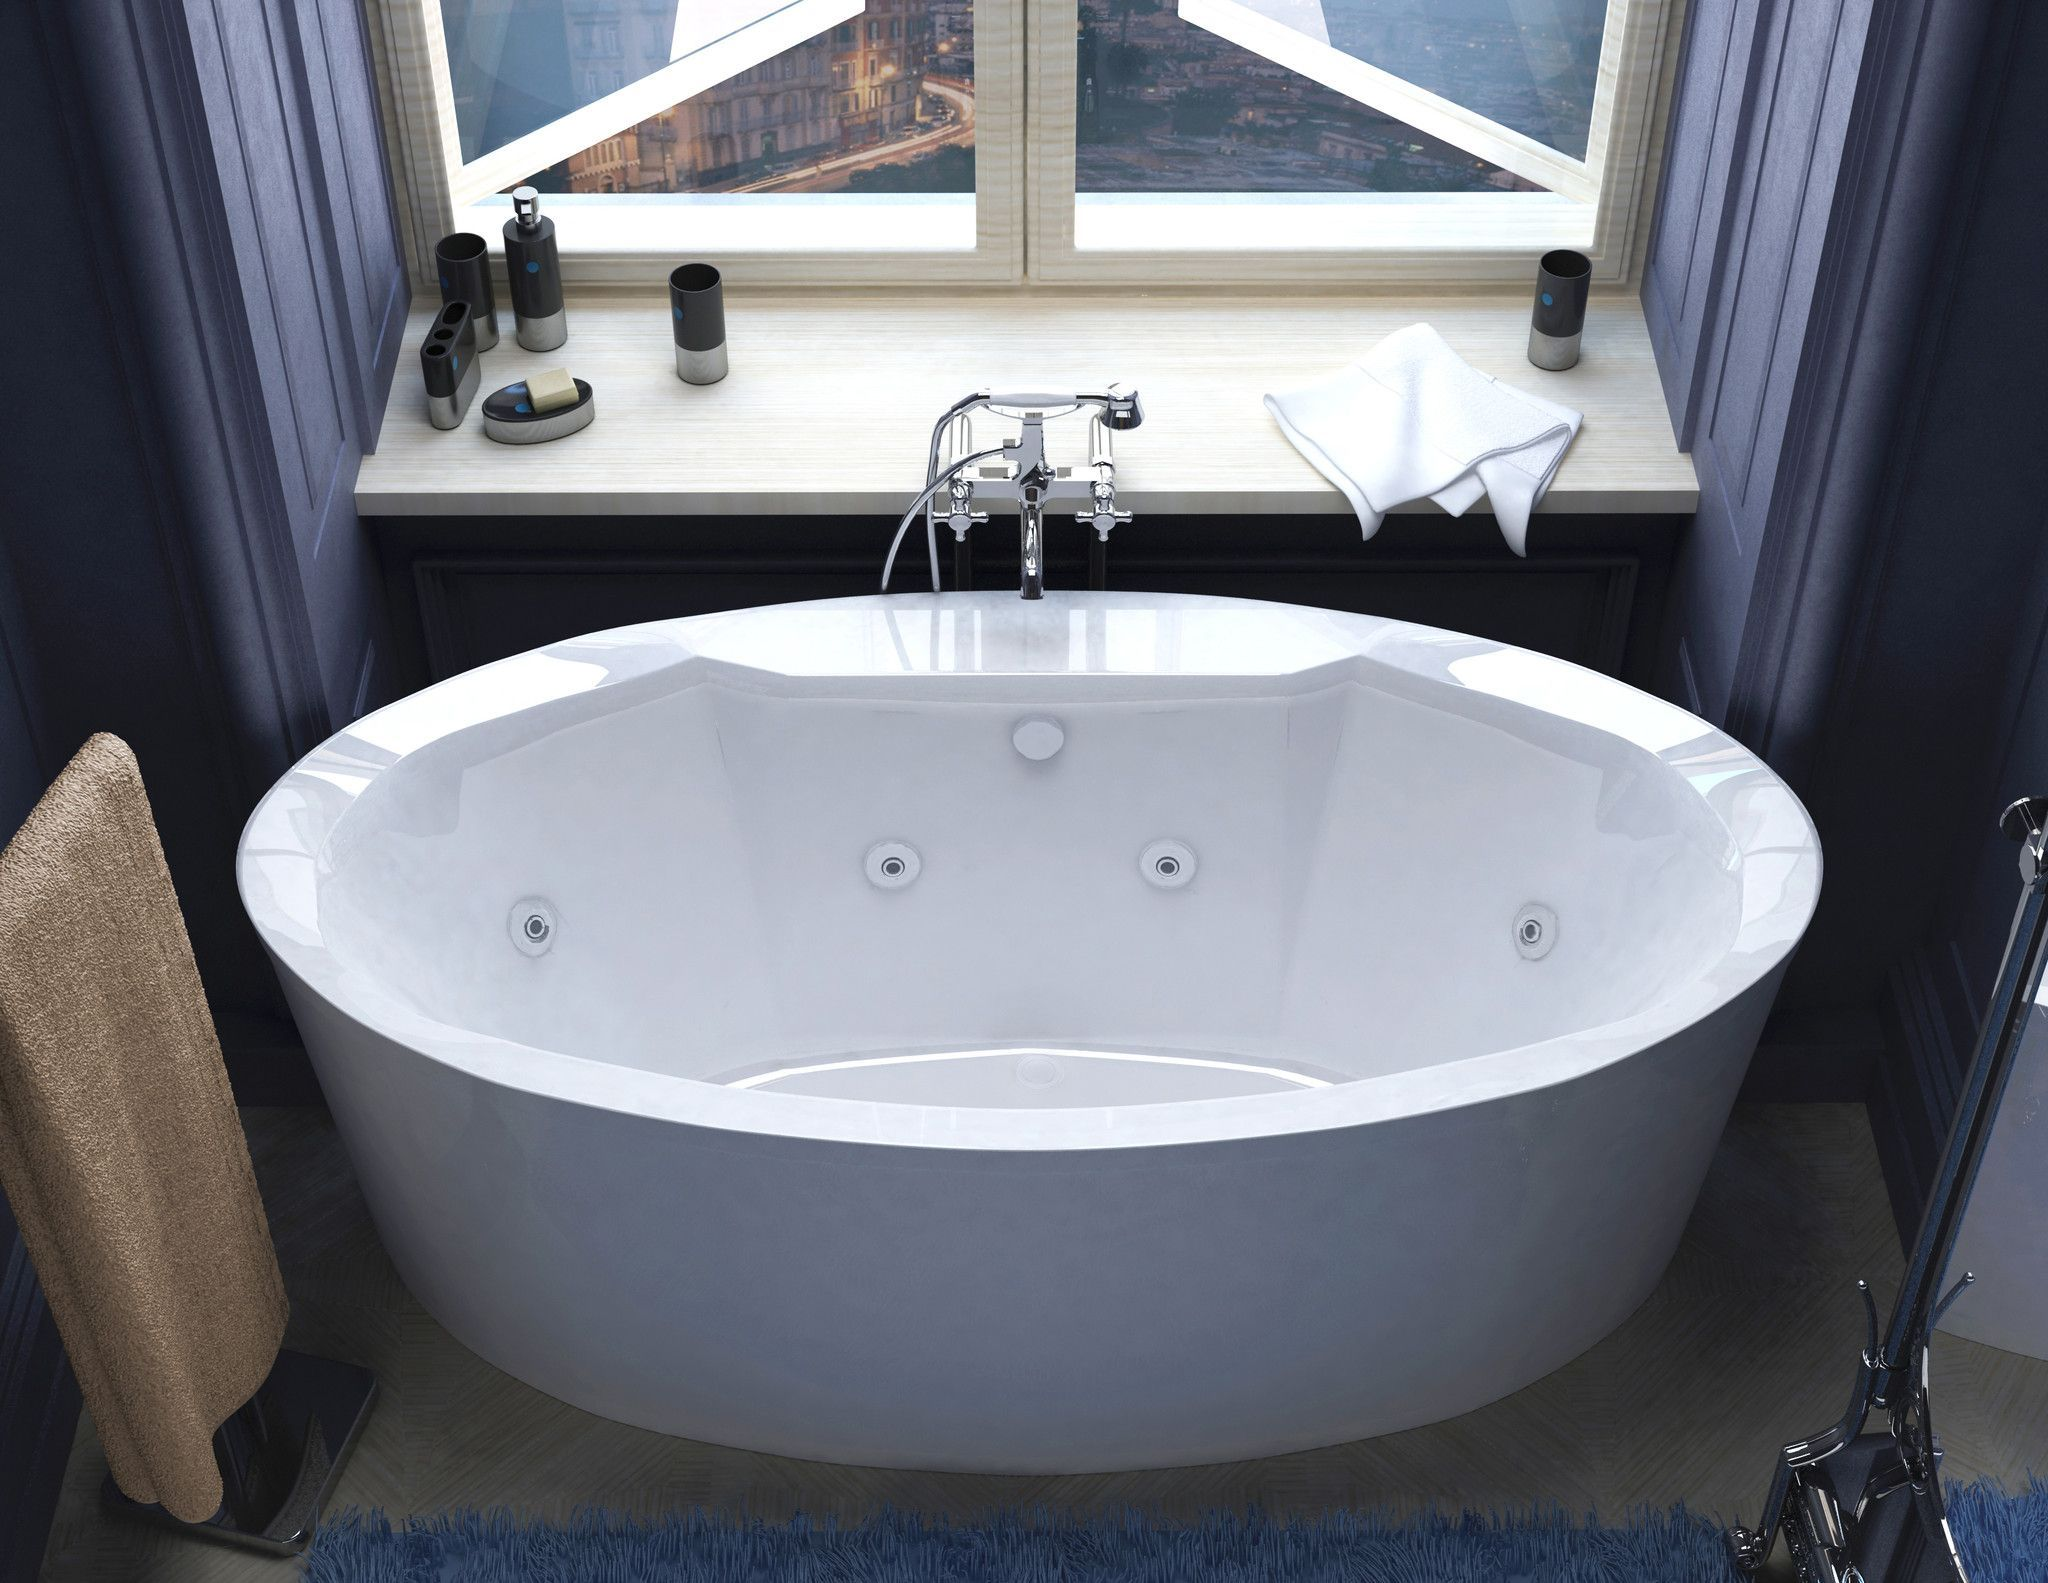 Atlantis Whirlpools 3468SW Suisse 34 X 68 Oval Freestanding Whirlpool  Jetted Bathtub